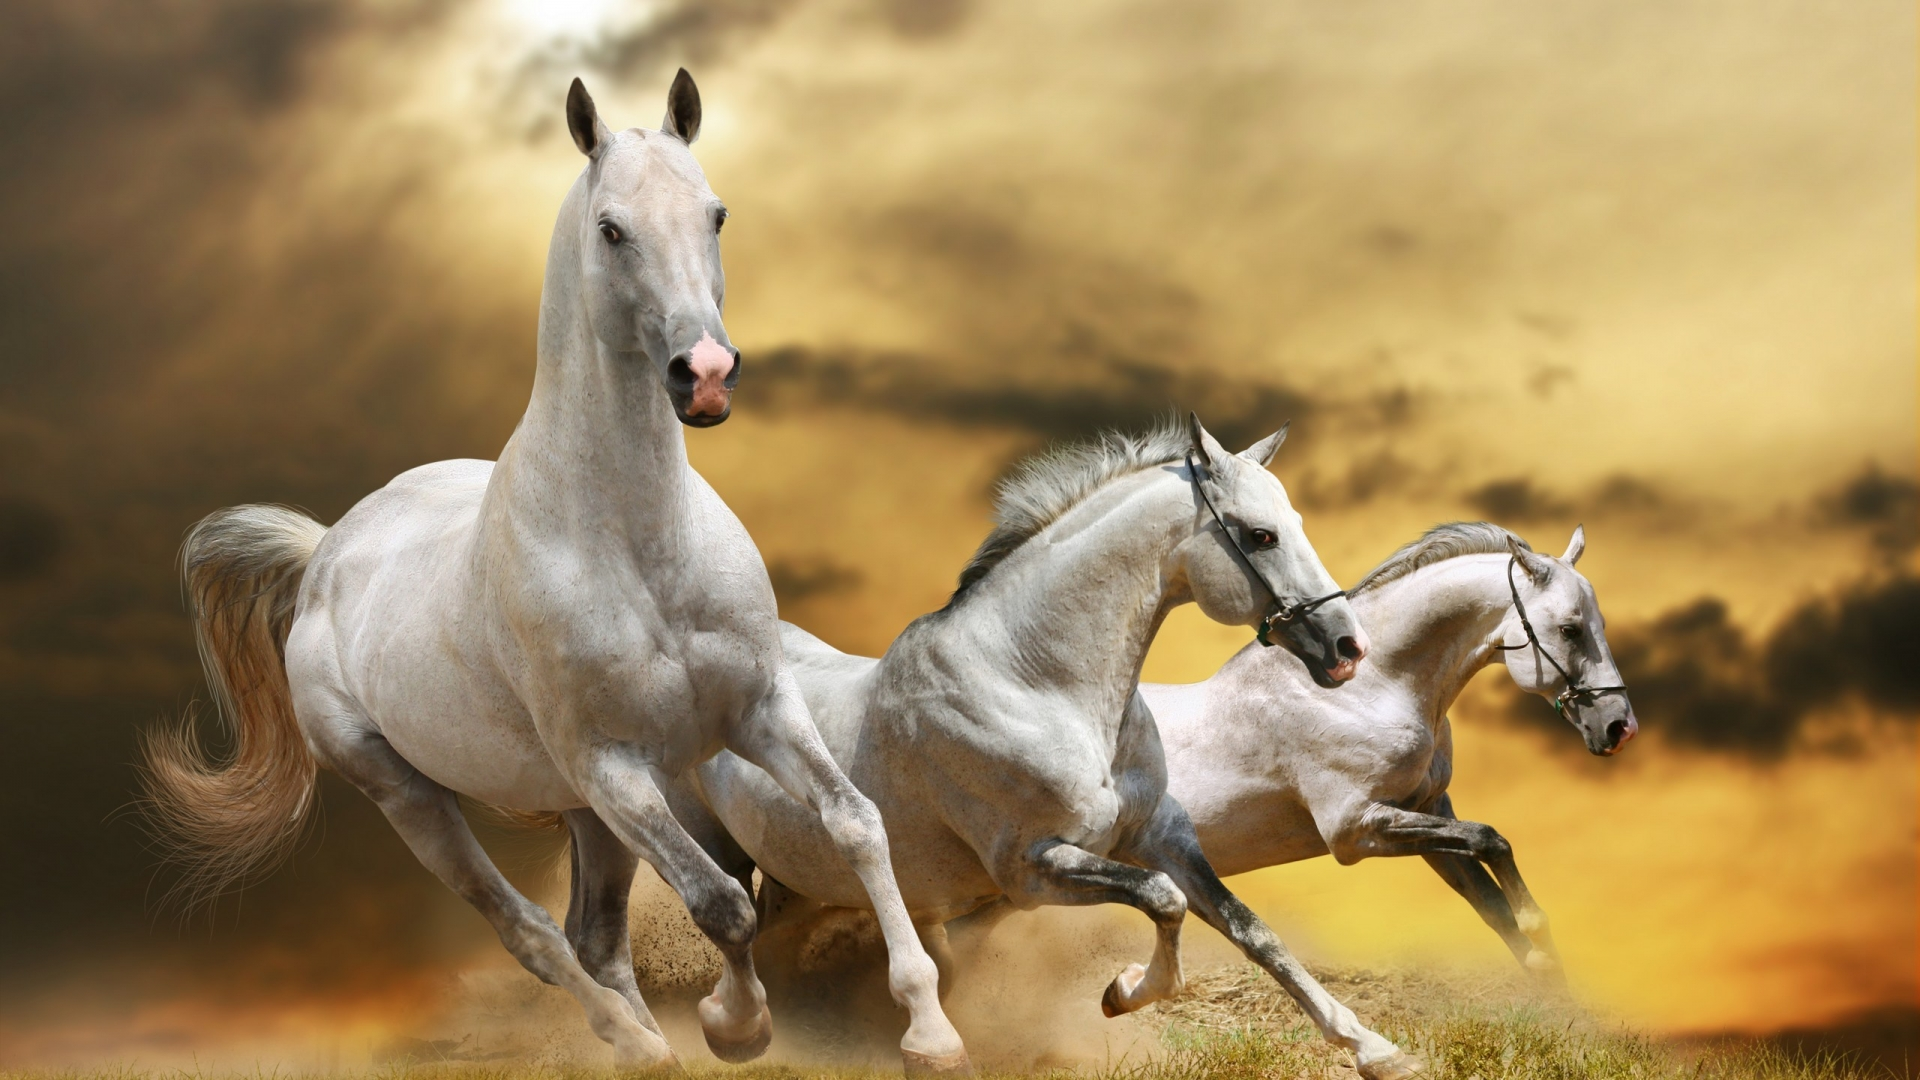 White Cute Cats Wallpapers Three Beautiful White Horses Running